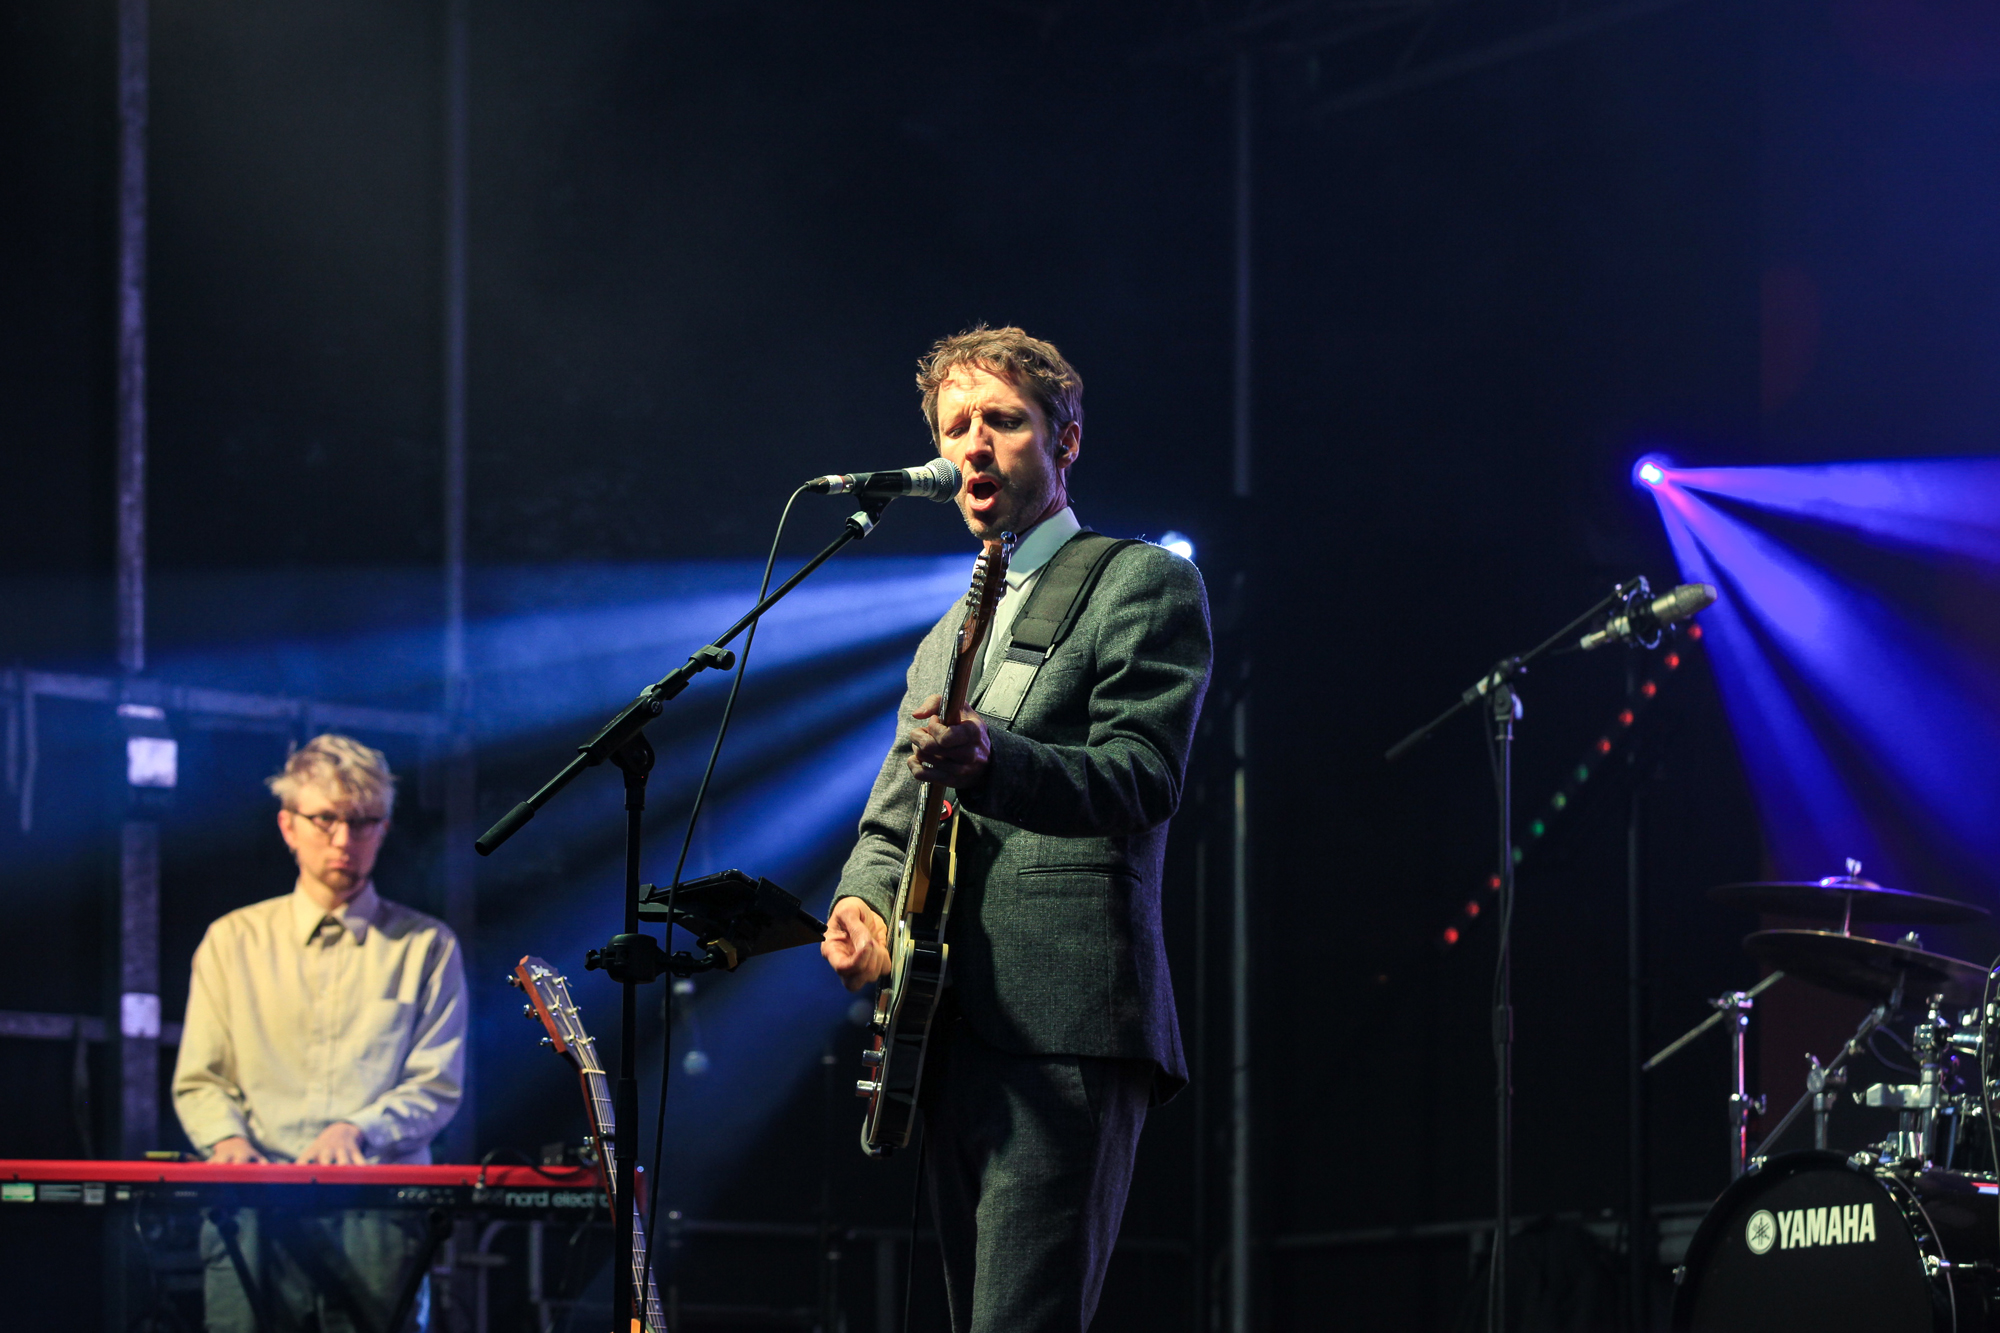 Undercover hippy on stage at Dartmouth music festival 2019